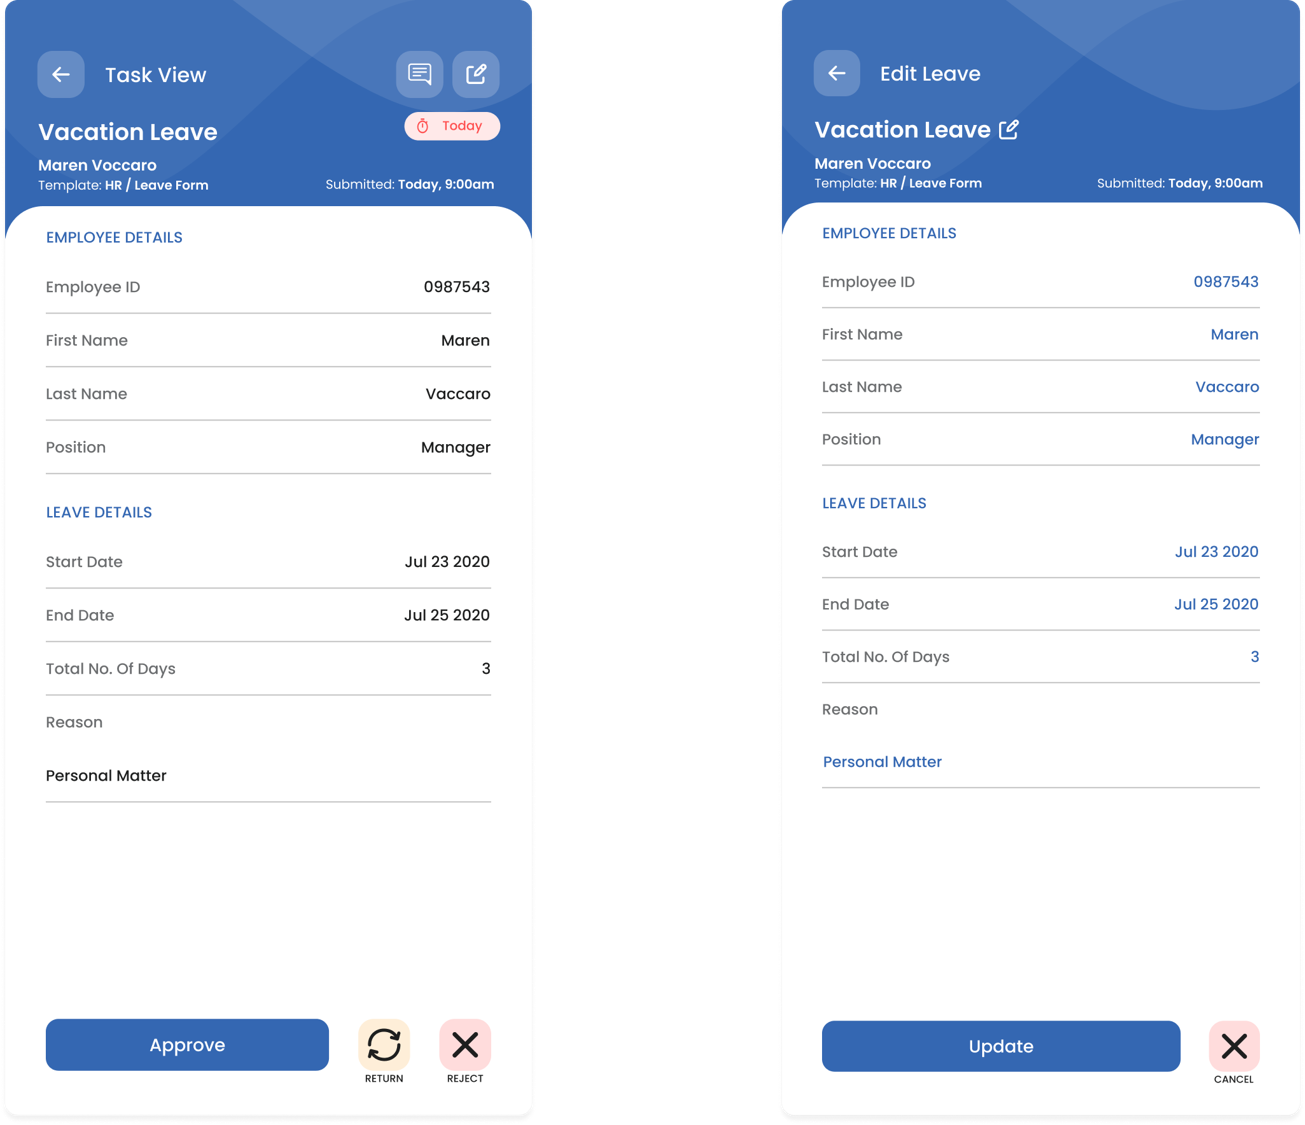 Mobile Feature: Approve and Update Tickets